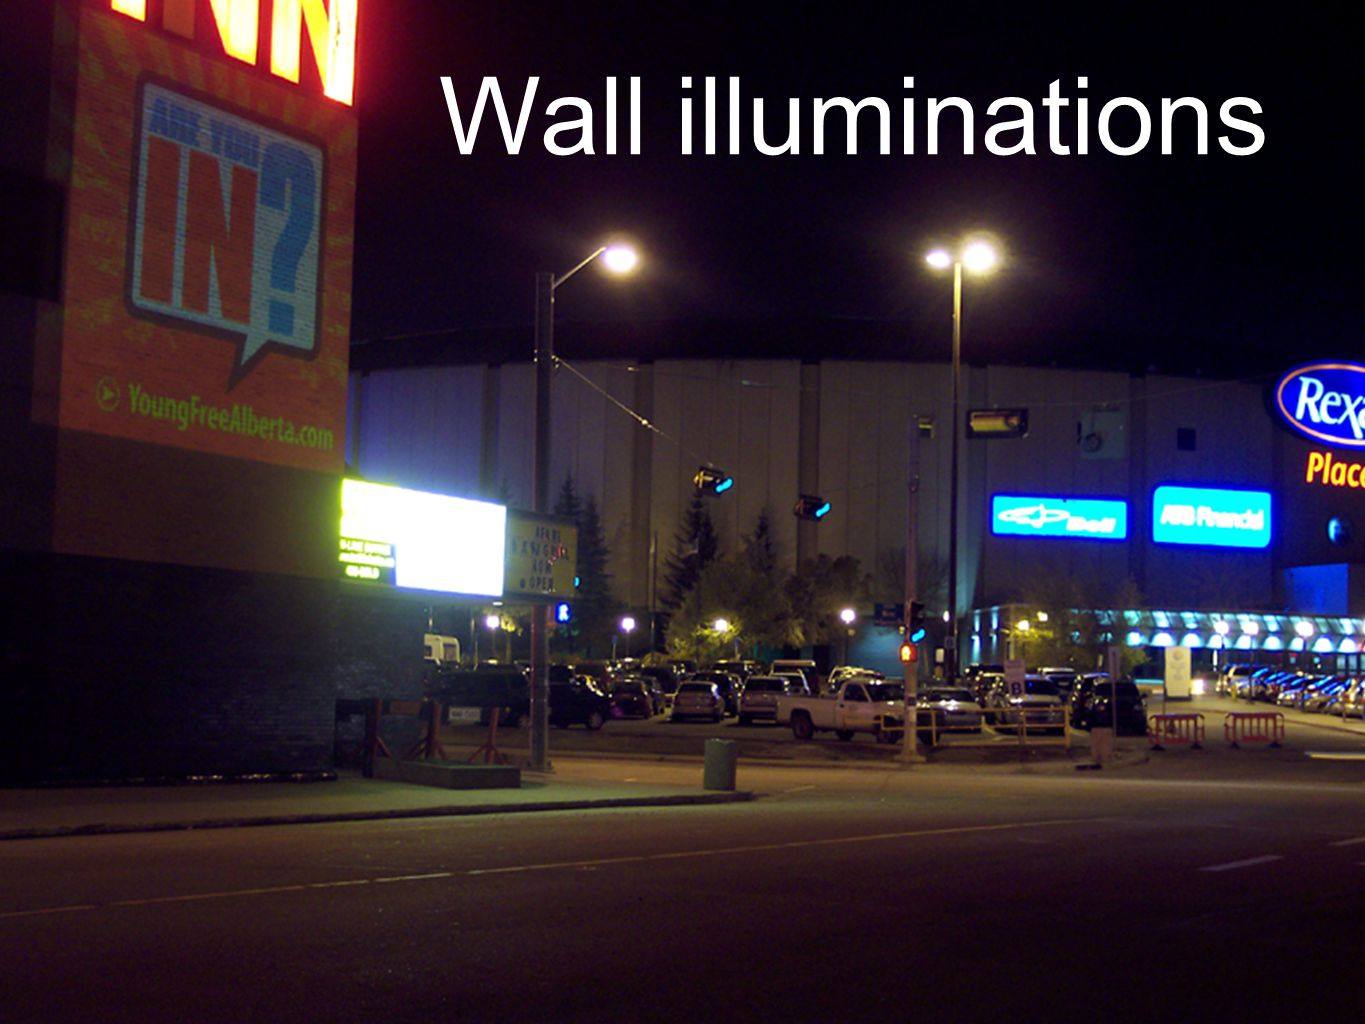 Wall illuminations